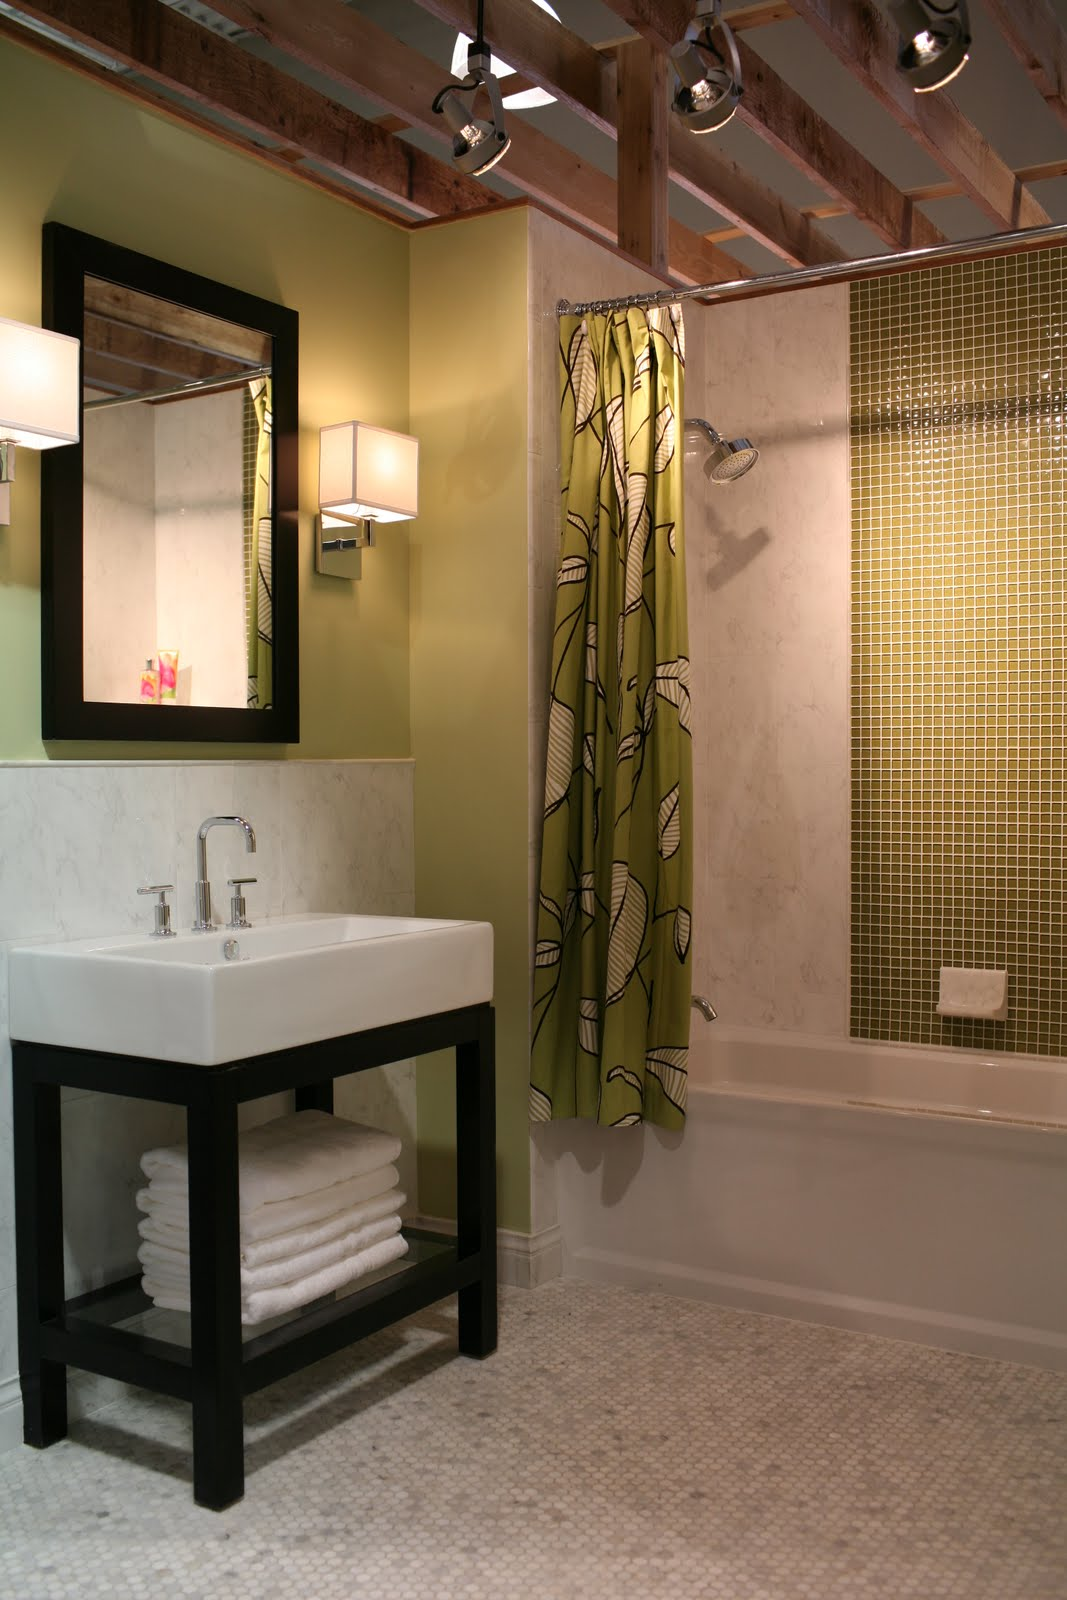 Shower Curtains | The Tile Shop: Design by Kirsty